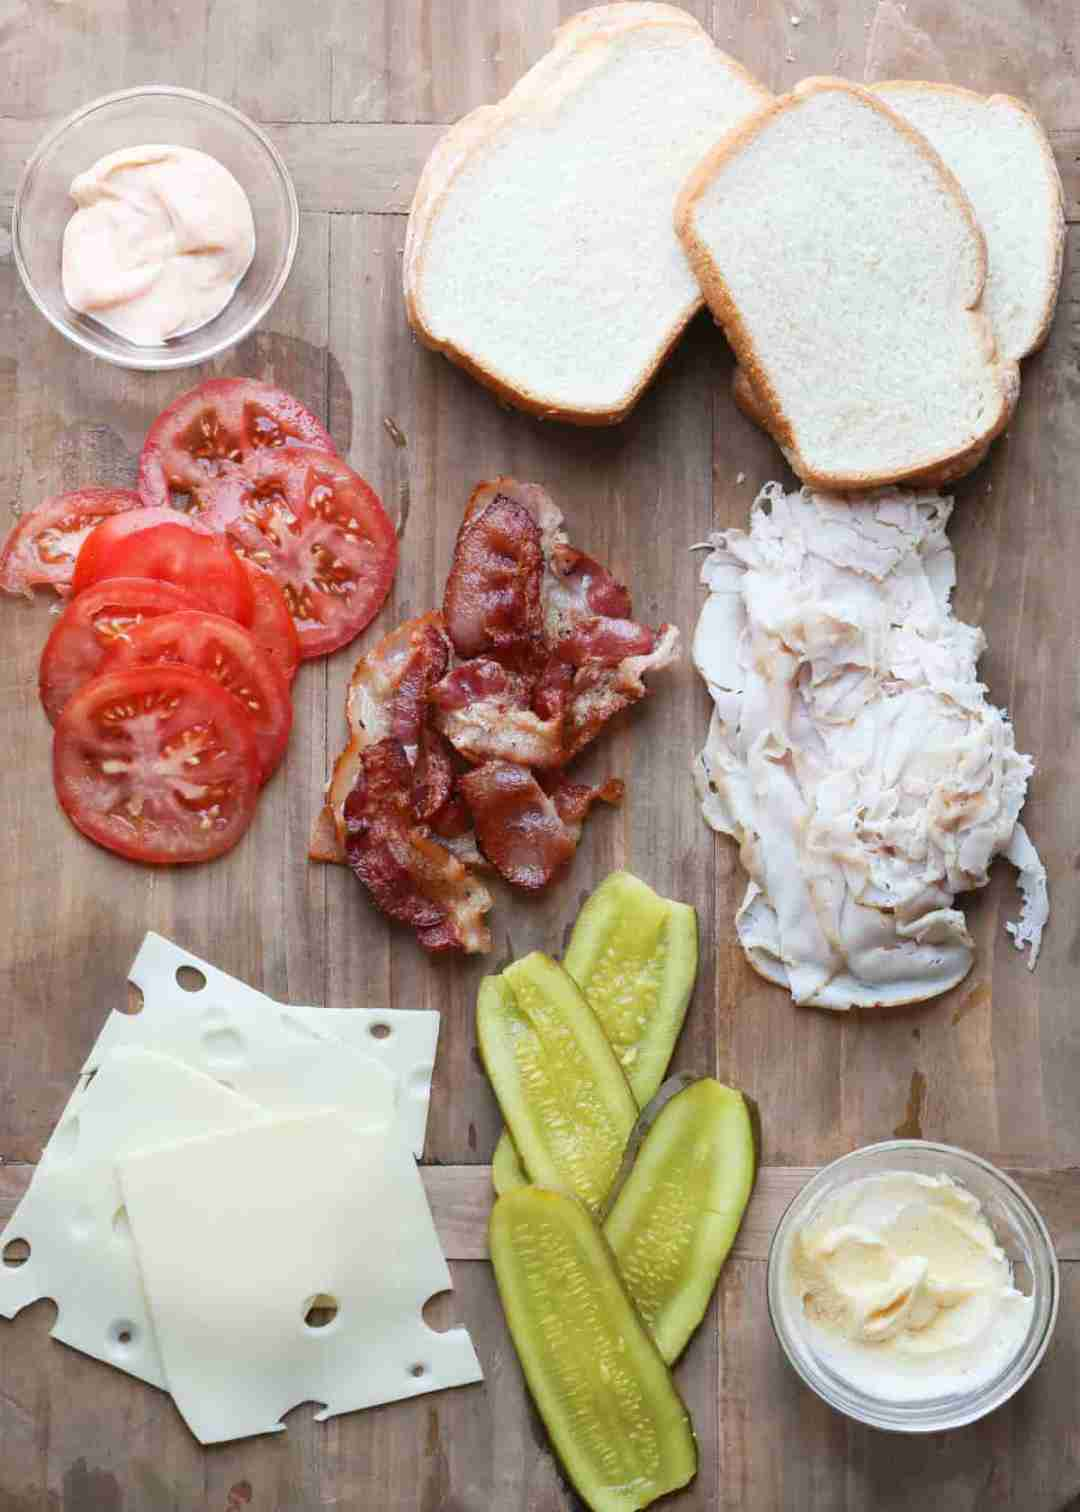 Ingredients for turkey bacon grilled cheese recipe.